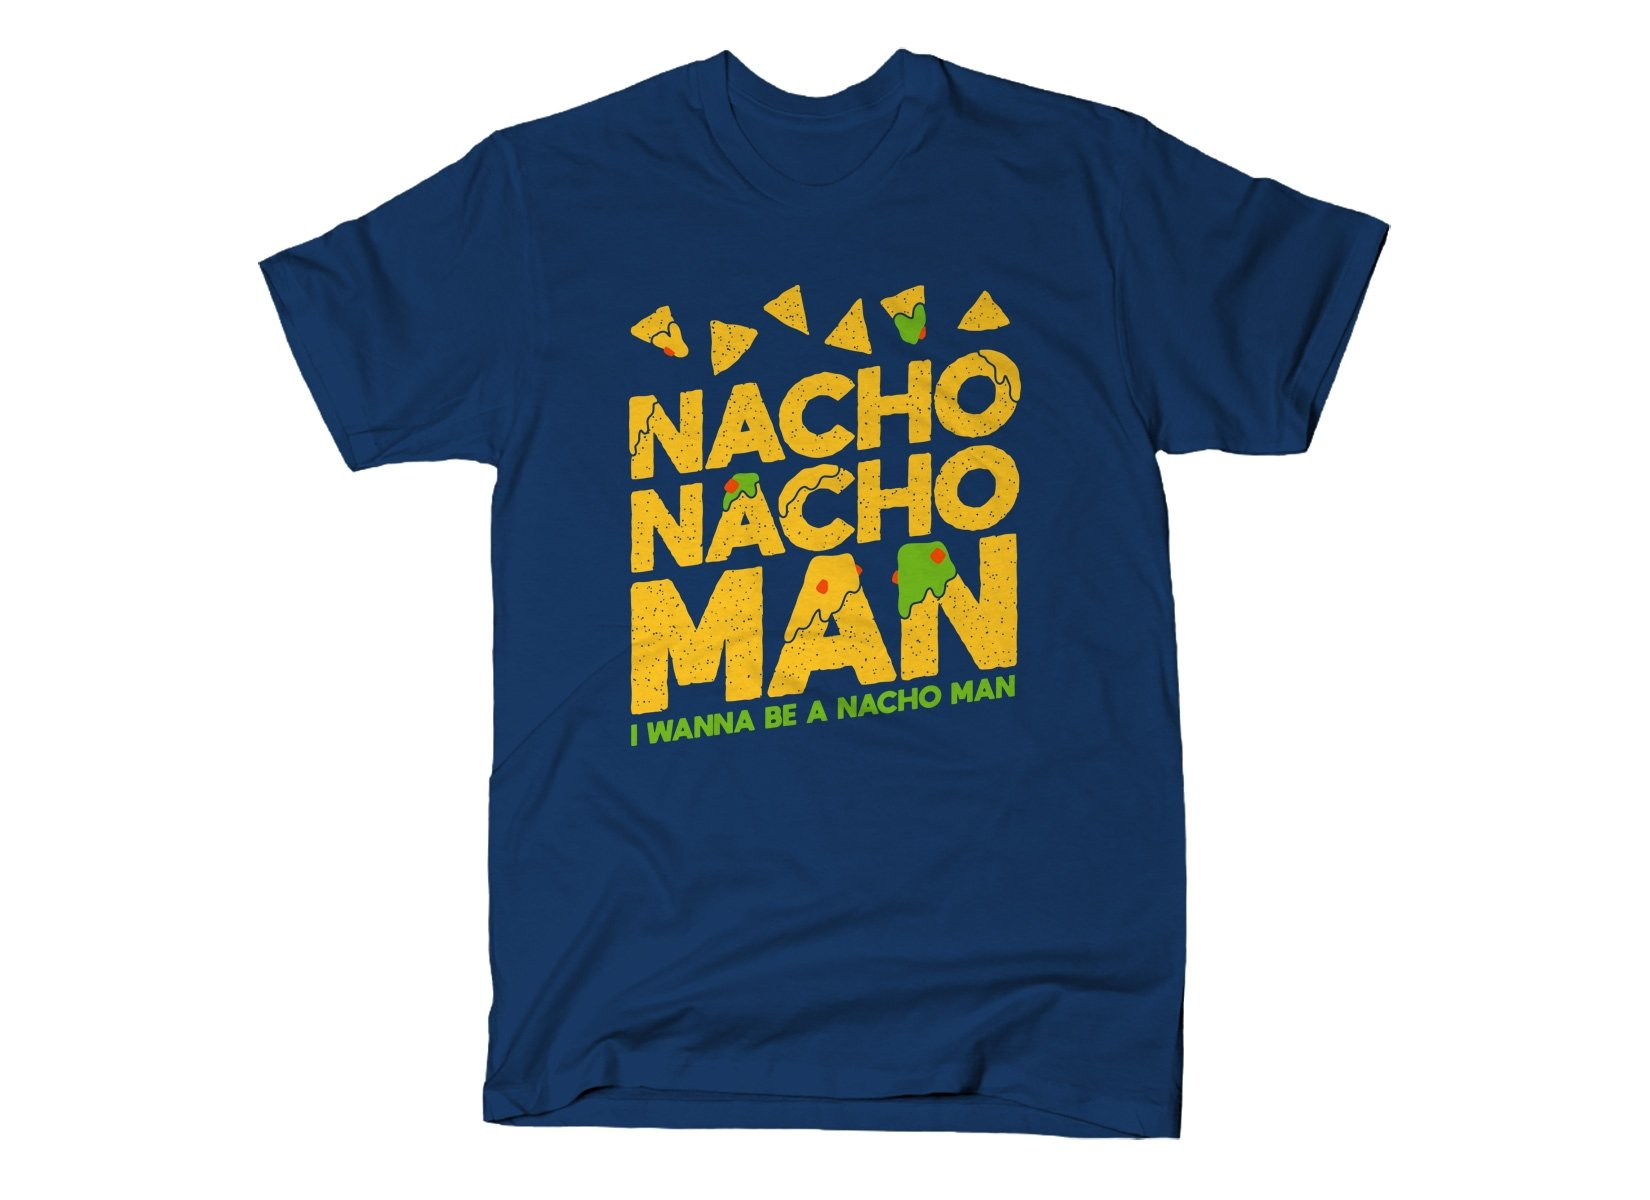 Nacho Nacho Man on Mens T-Shirt